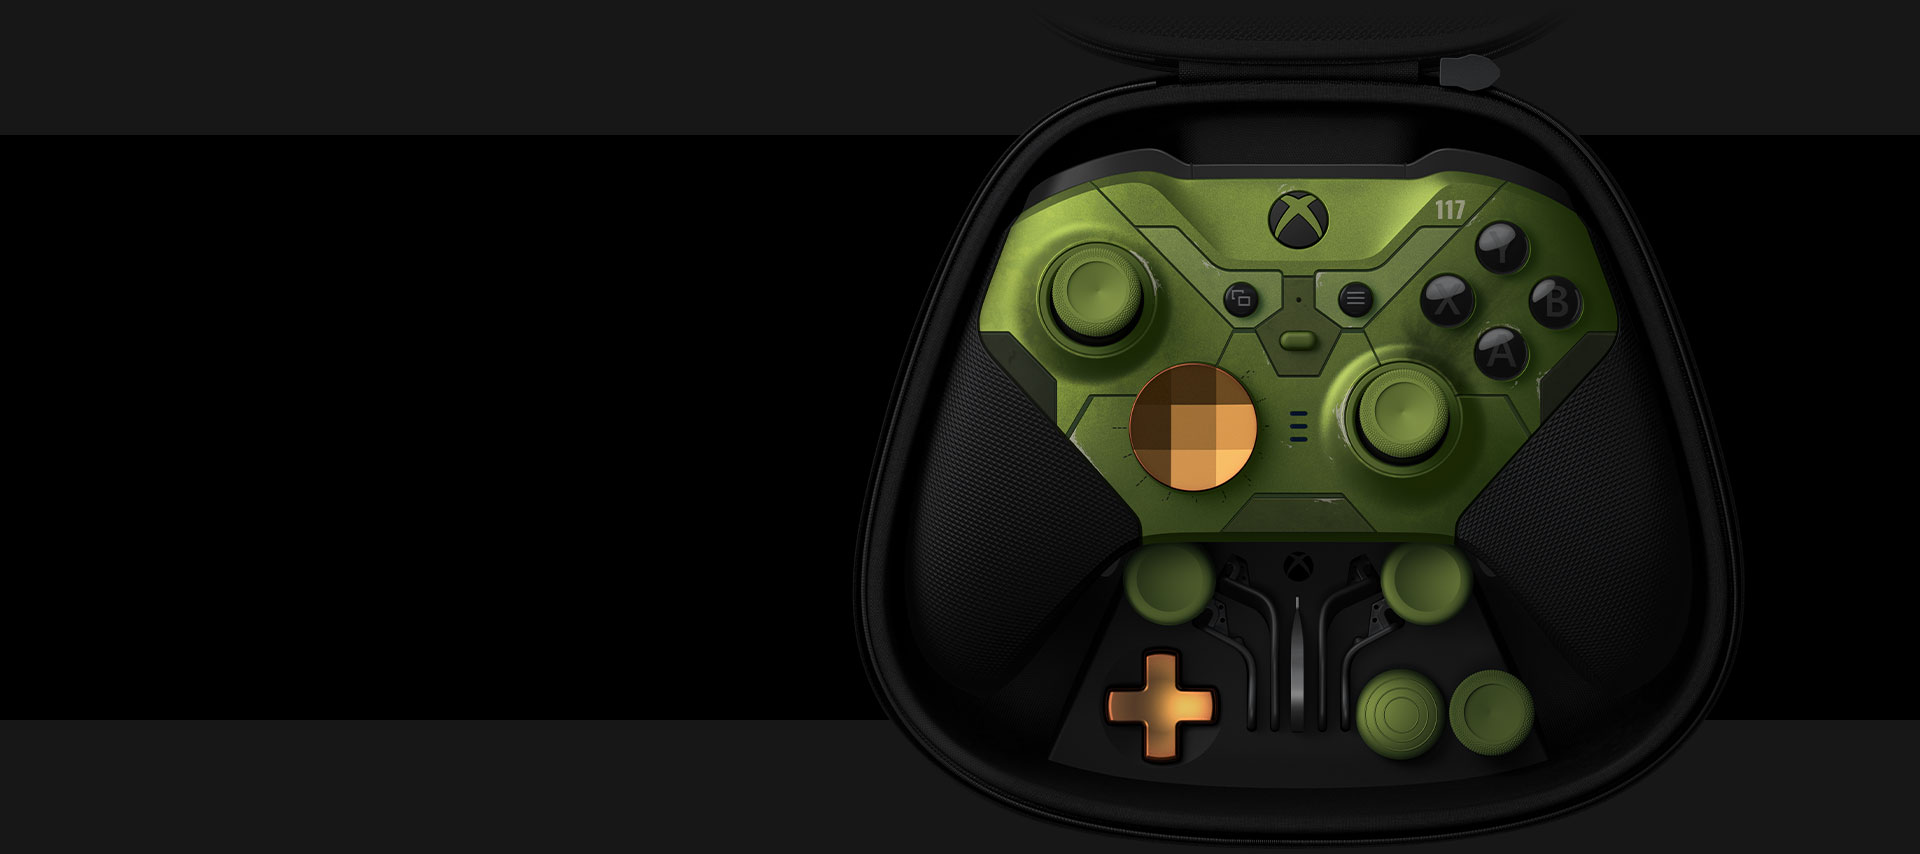 Xbox Elite Wireless Controller Series 2 - Halo Infinite Limited Edition in the controller case with interchangeable parts